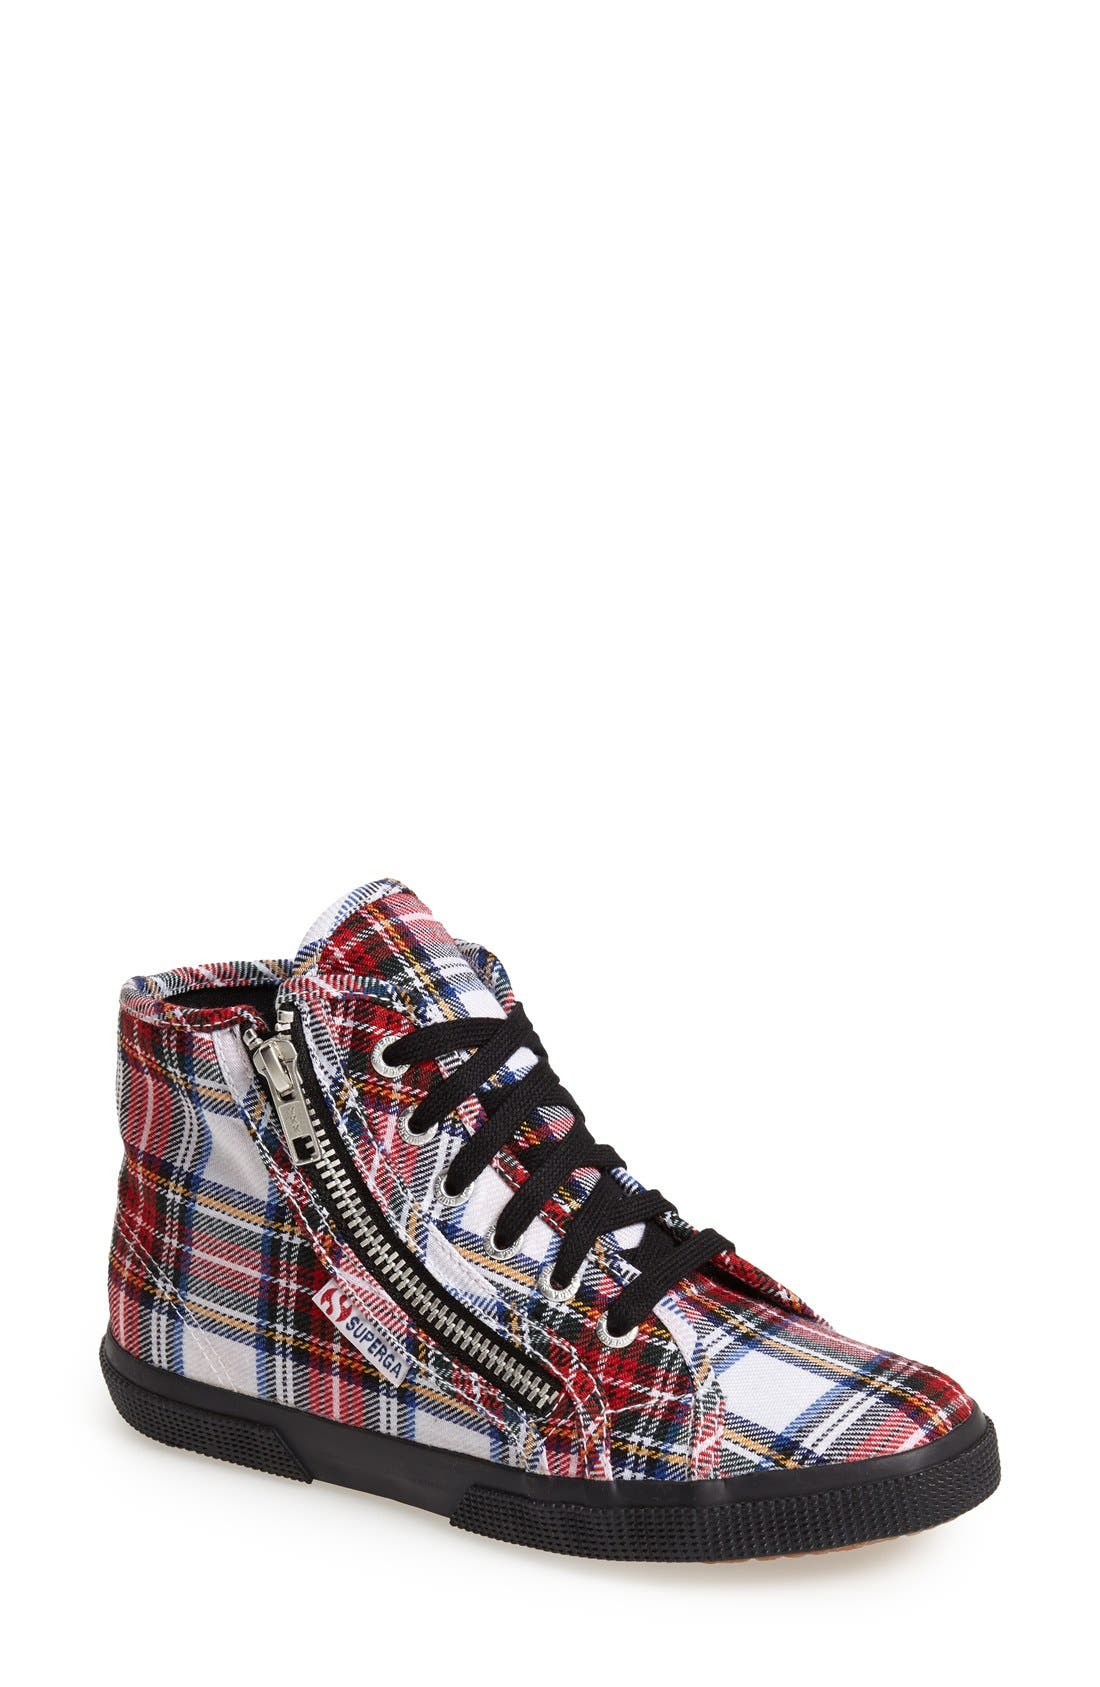 Alternate Image 1 Selected - Superga Tartan Print High-Top Sneaker (Women)